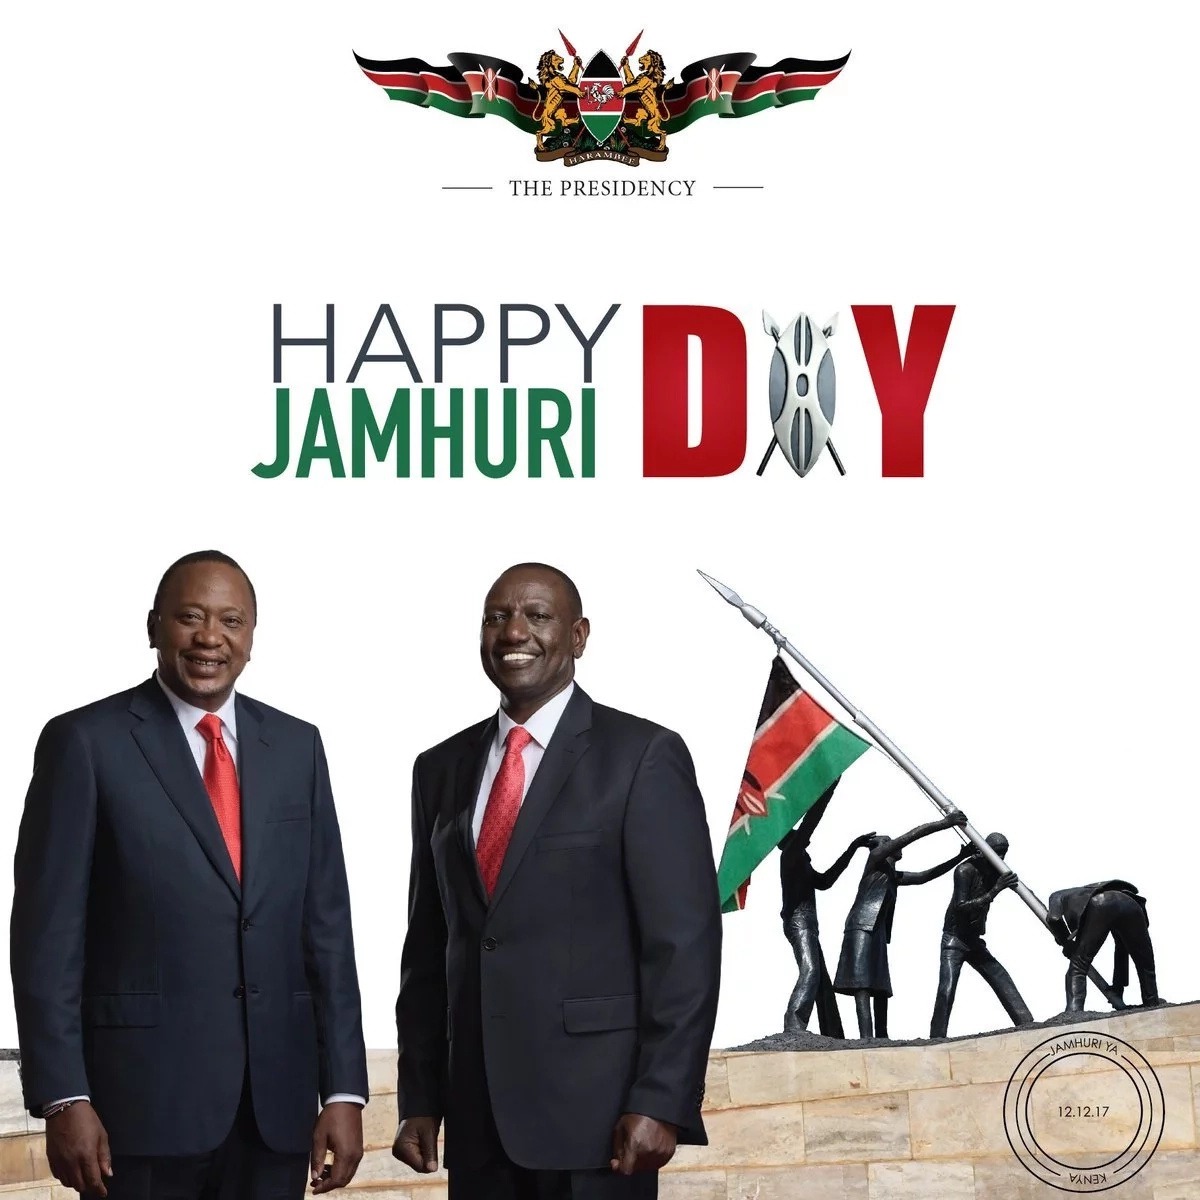 Outrage meets list of Kenyans awarded by Uhuru on his fifth Jamhuri day as president